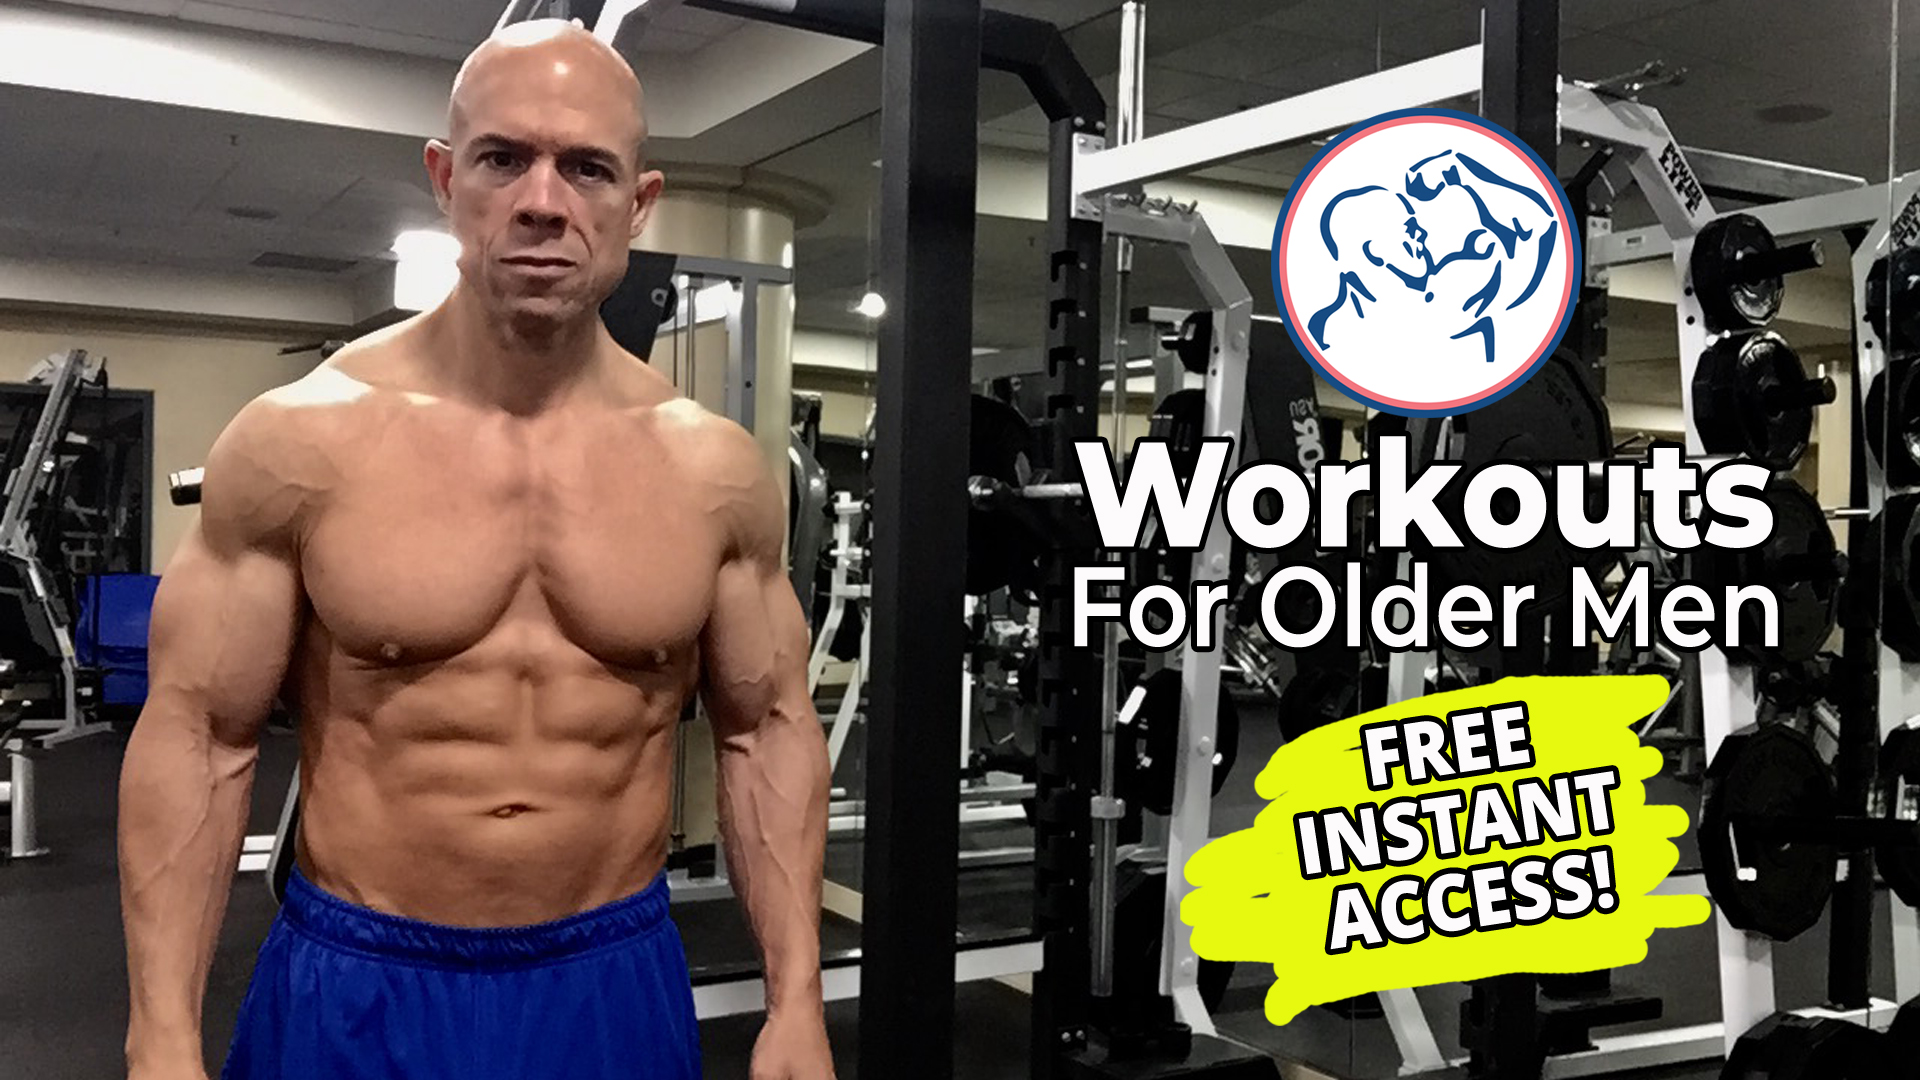 mf workouts for older men flash 2 How To Lose Chest Fat